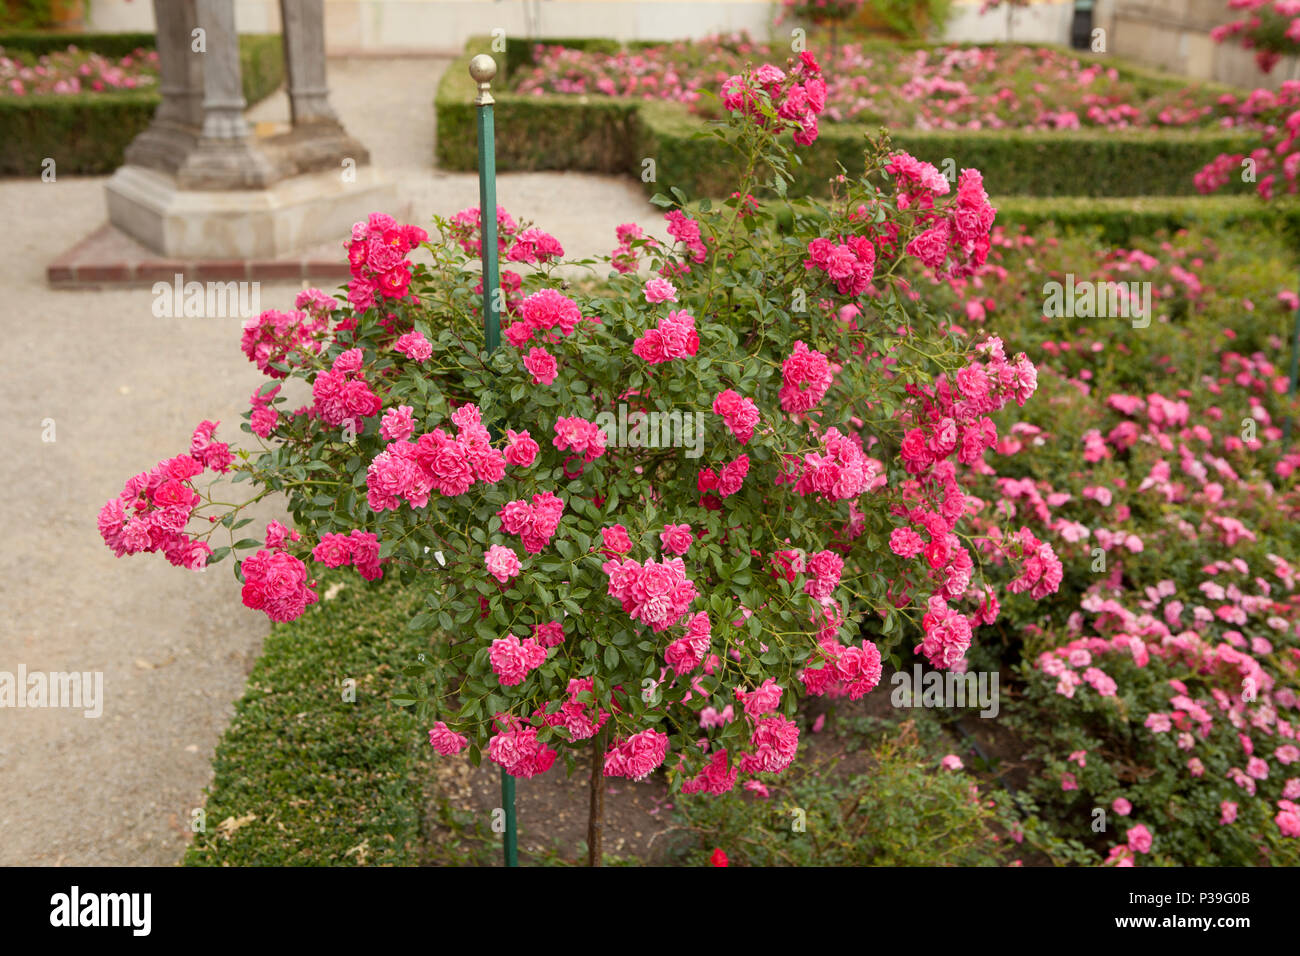 Flower Plant Small Pink Buds Stock Photos Flower Plant Small Pink